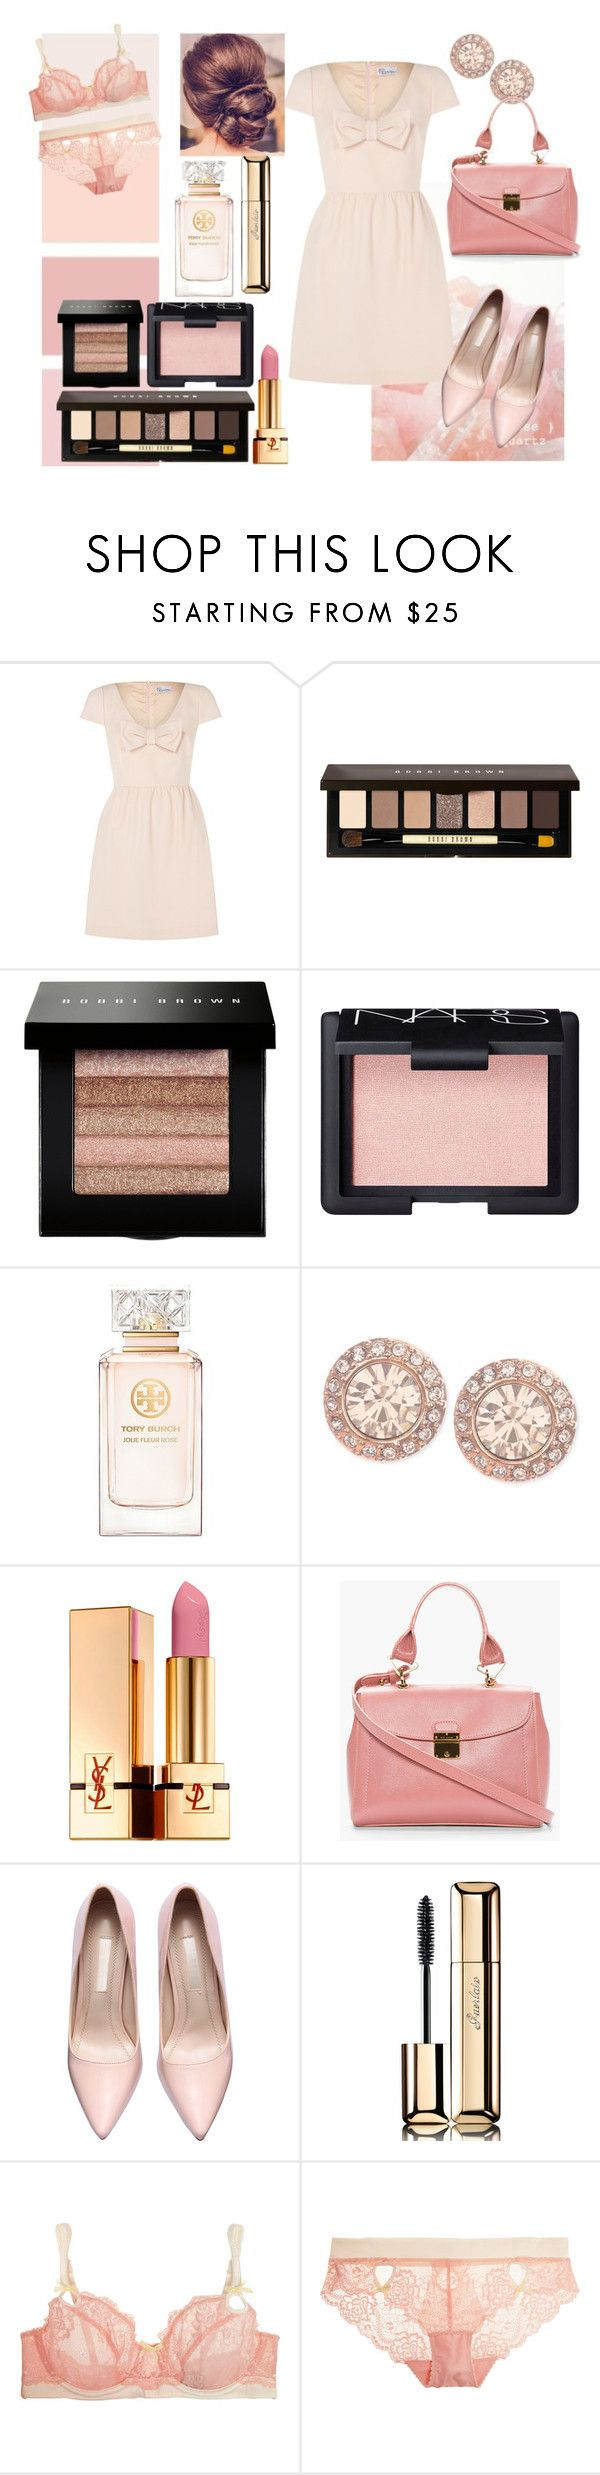 """""""Rose Quartz"""" by miss-meghan-elizabeth ❤ liked on Polyvore featuring RED Valentino, Bobbi Brown Cosmetics, NARS Cosmetics, Tory Burch, Givenchy, Yves Saint Laurent, Marc Jacobs, Guerlain and Heidi Klum Intimates"""